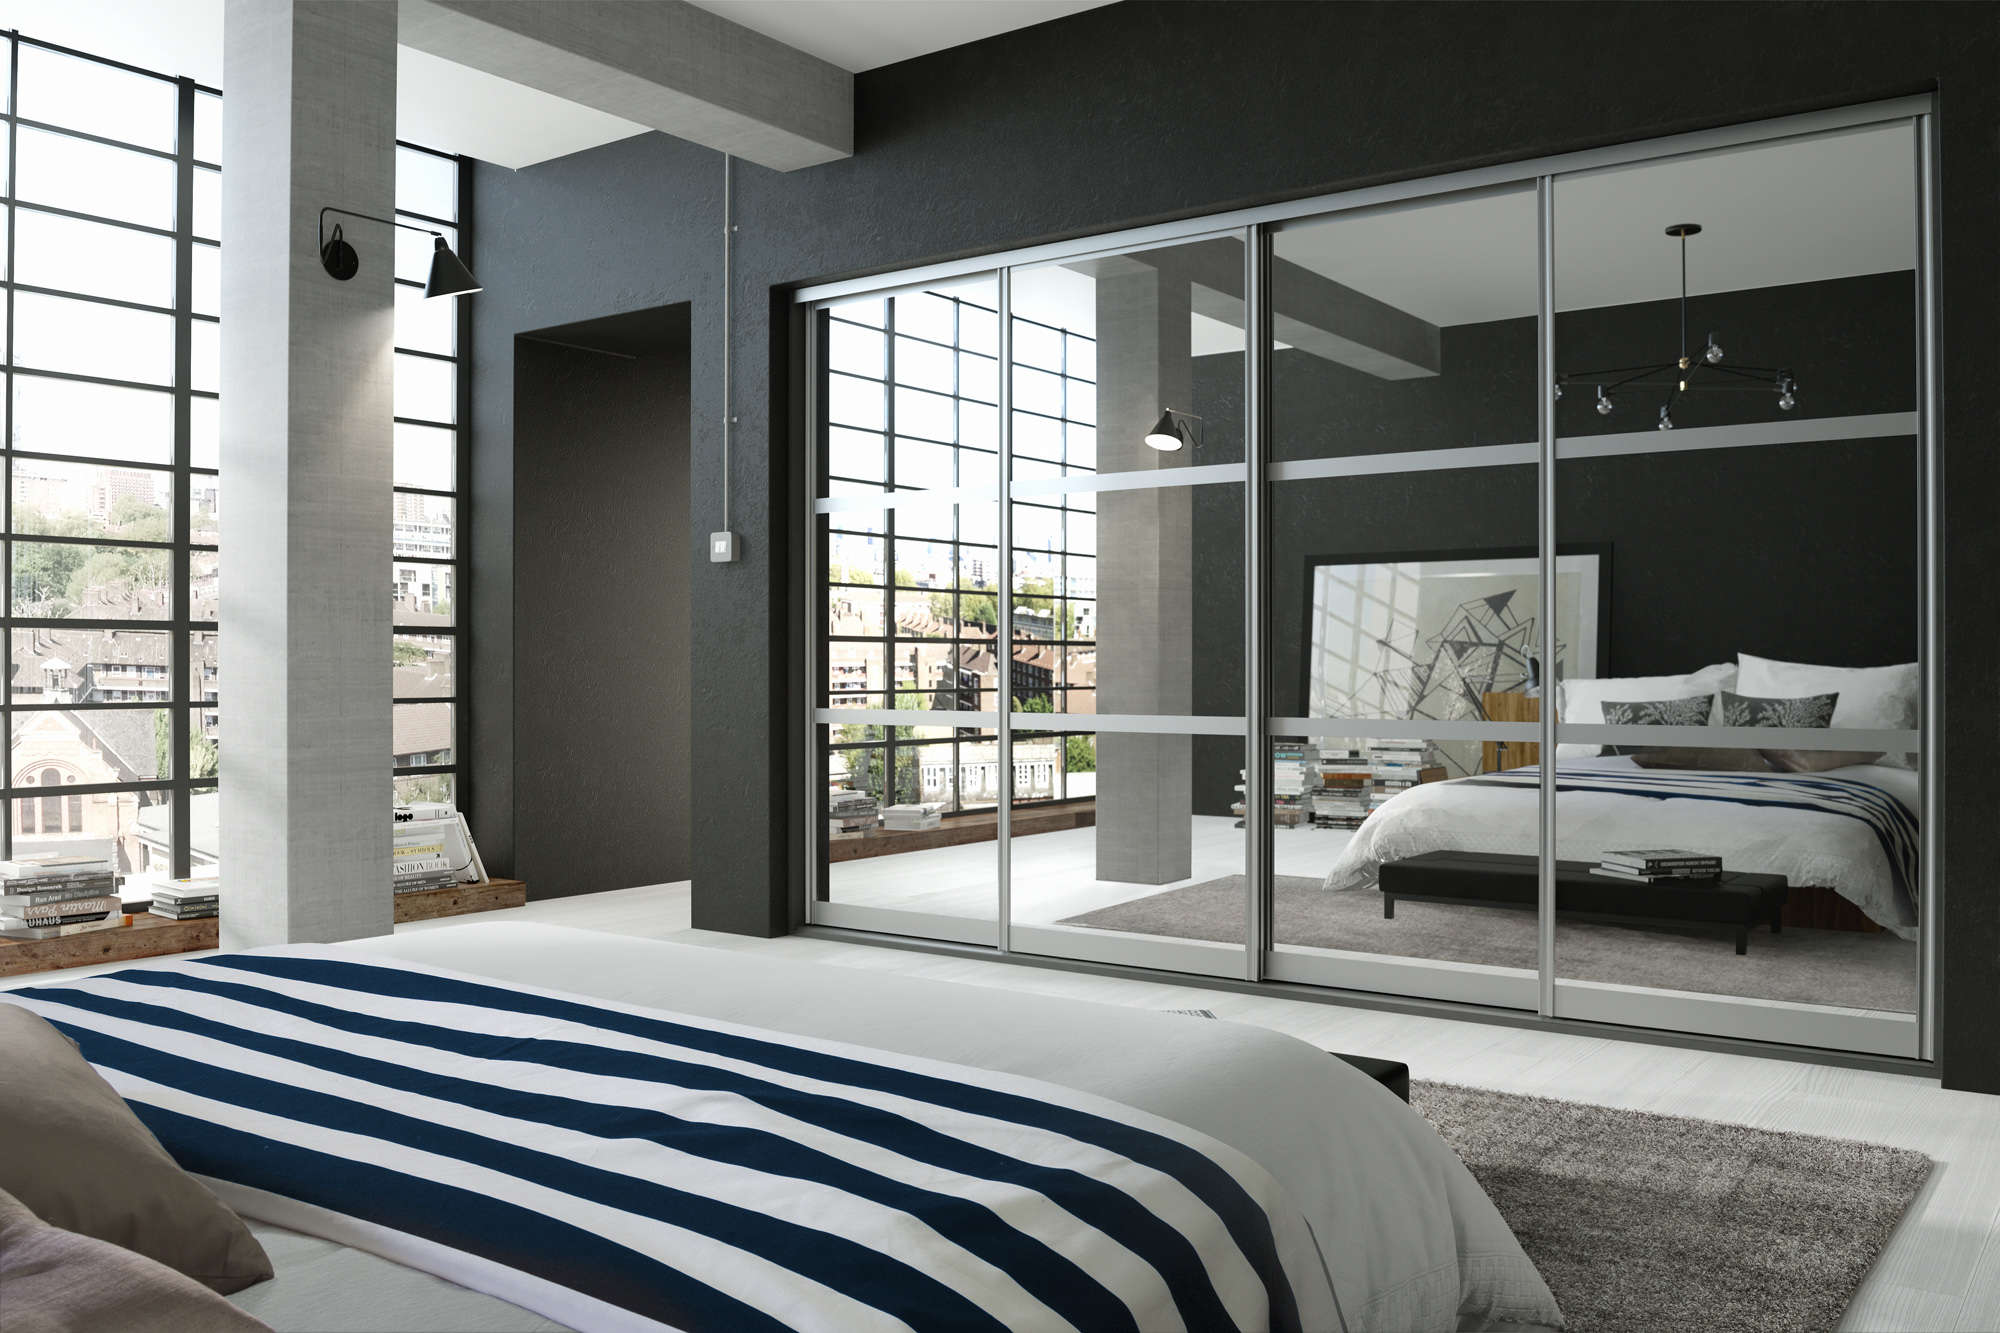 New Wave Bedrooms - Bespoke Sliding Wardrobes in Leeds